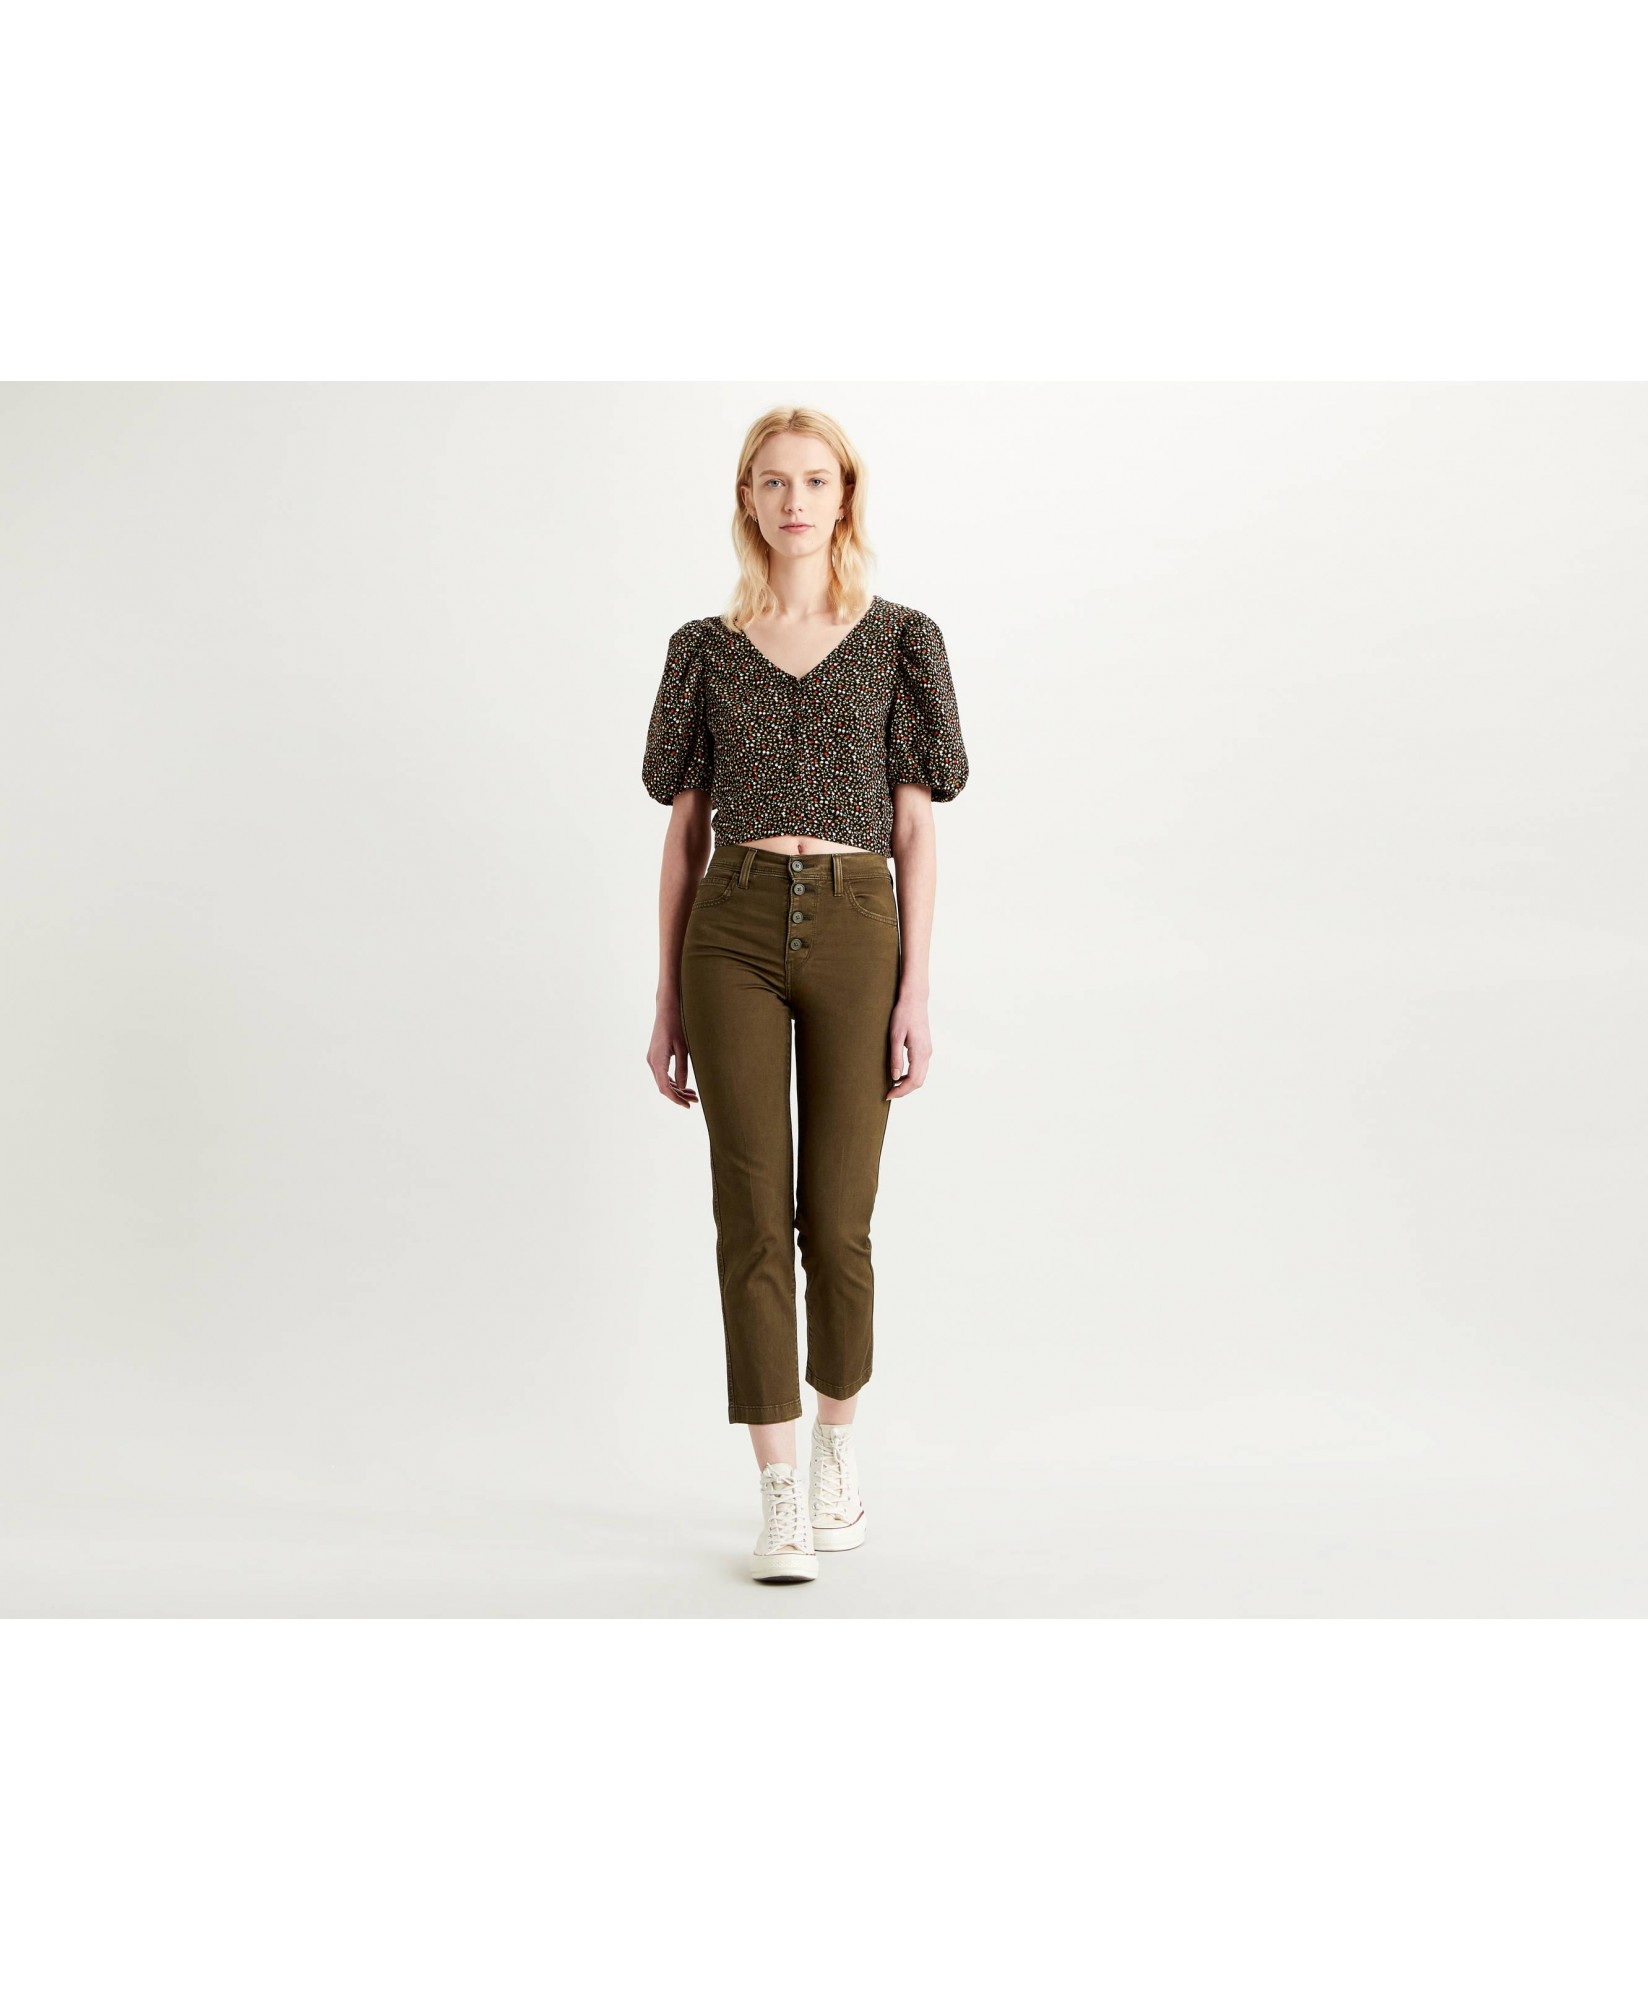 PANTALON 724 HR STR CROP UTILITY